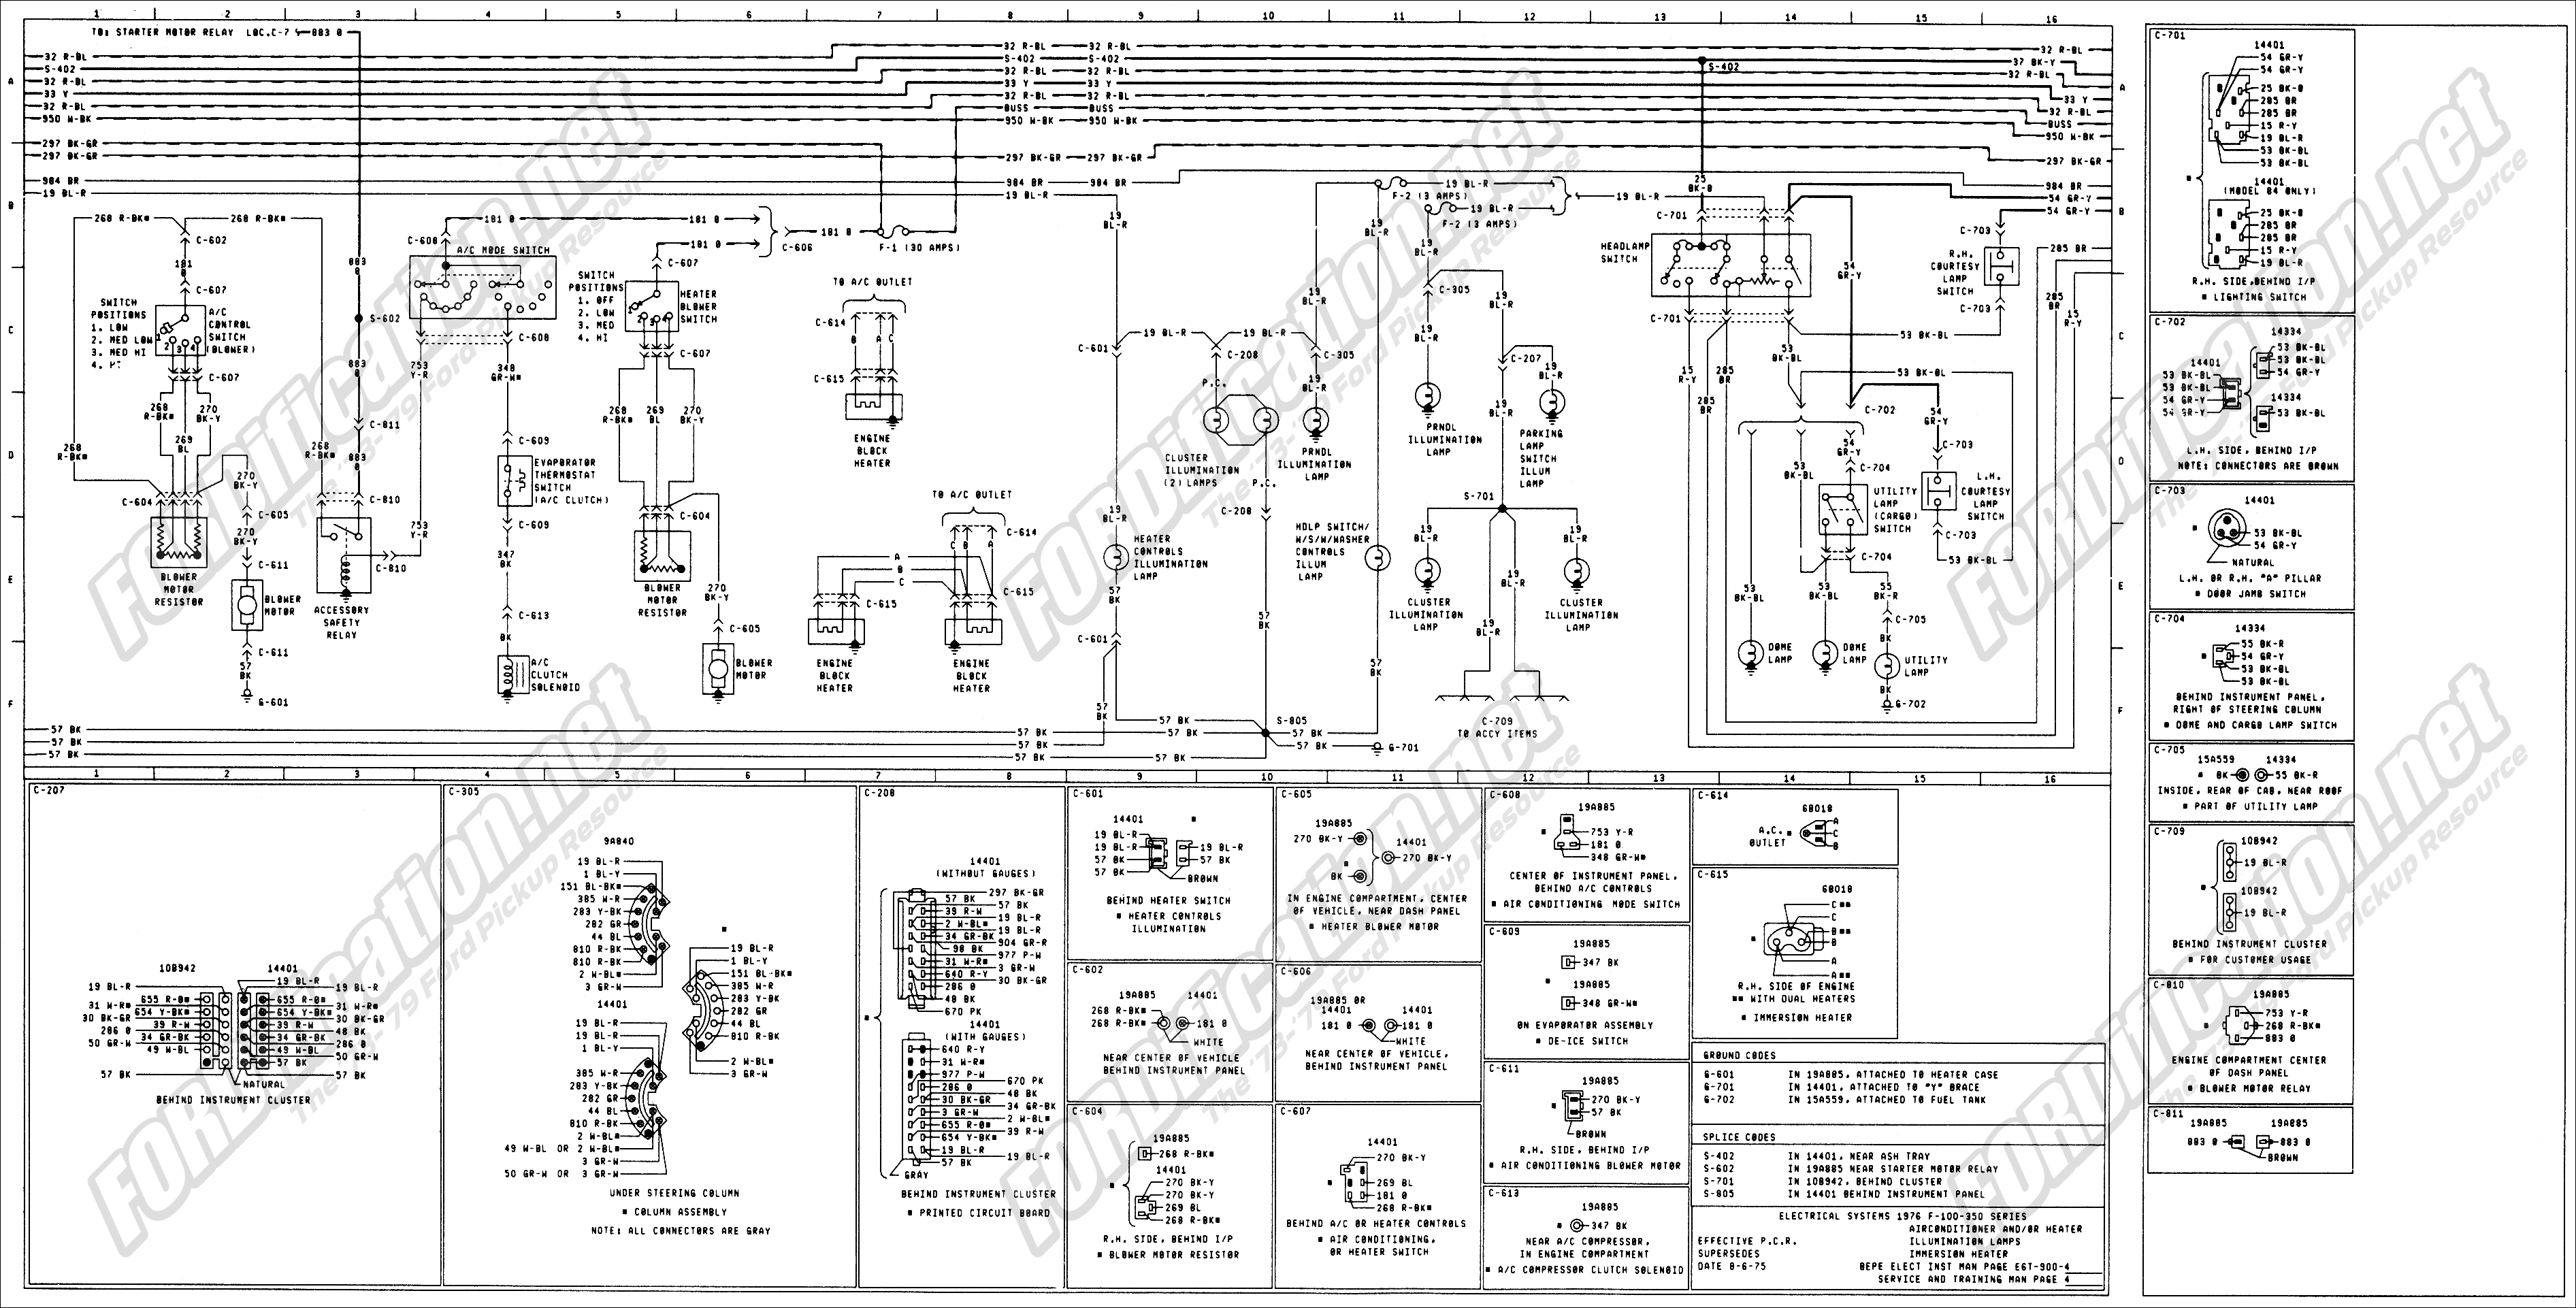 1964 ford f 100 f 150 to f 750 truck wiring diagrams